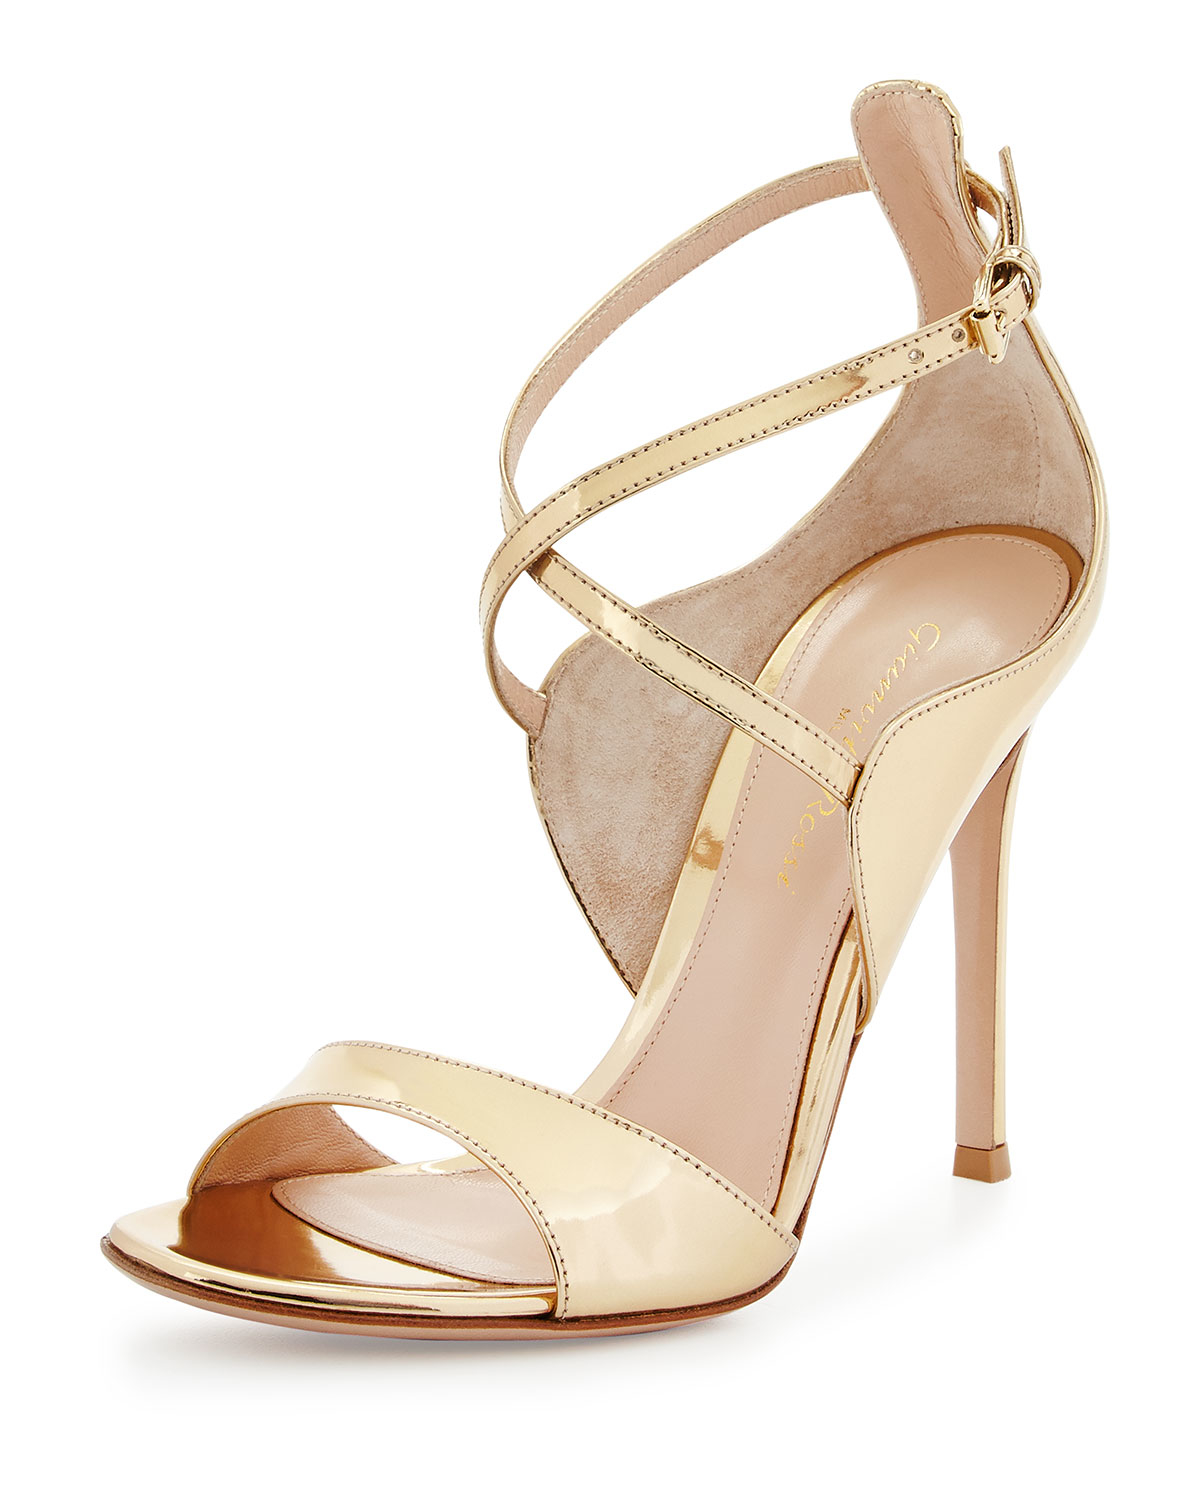 165a80a67c1 Lyst - Gianvito Rossi Crossover Ankle-Wrap Leather Sandals in Natural